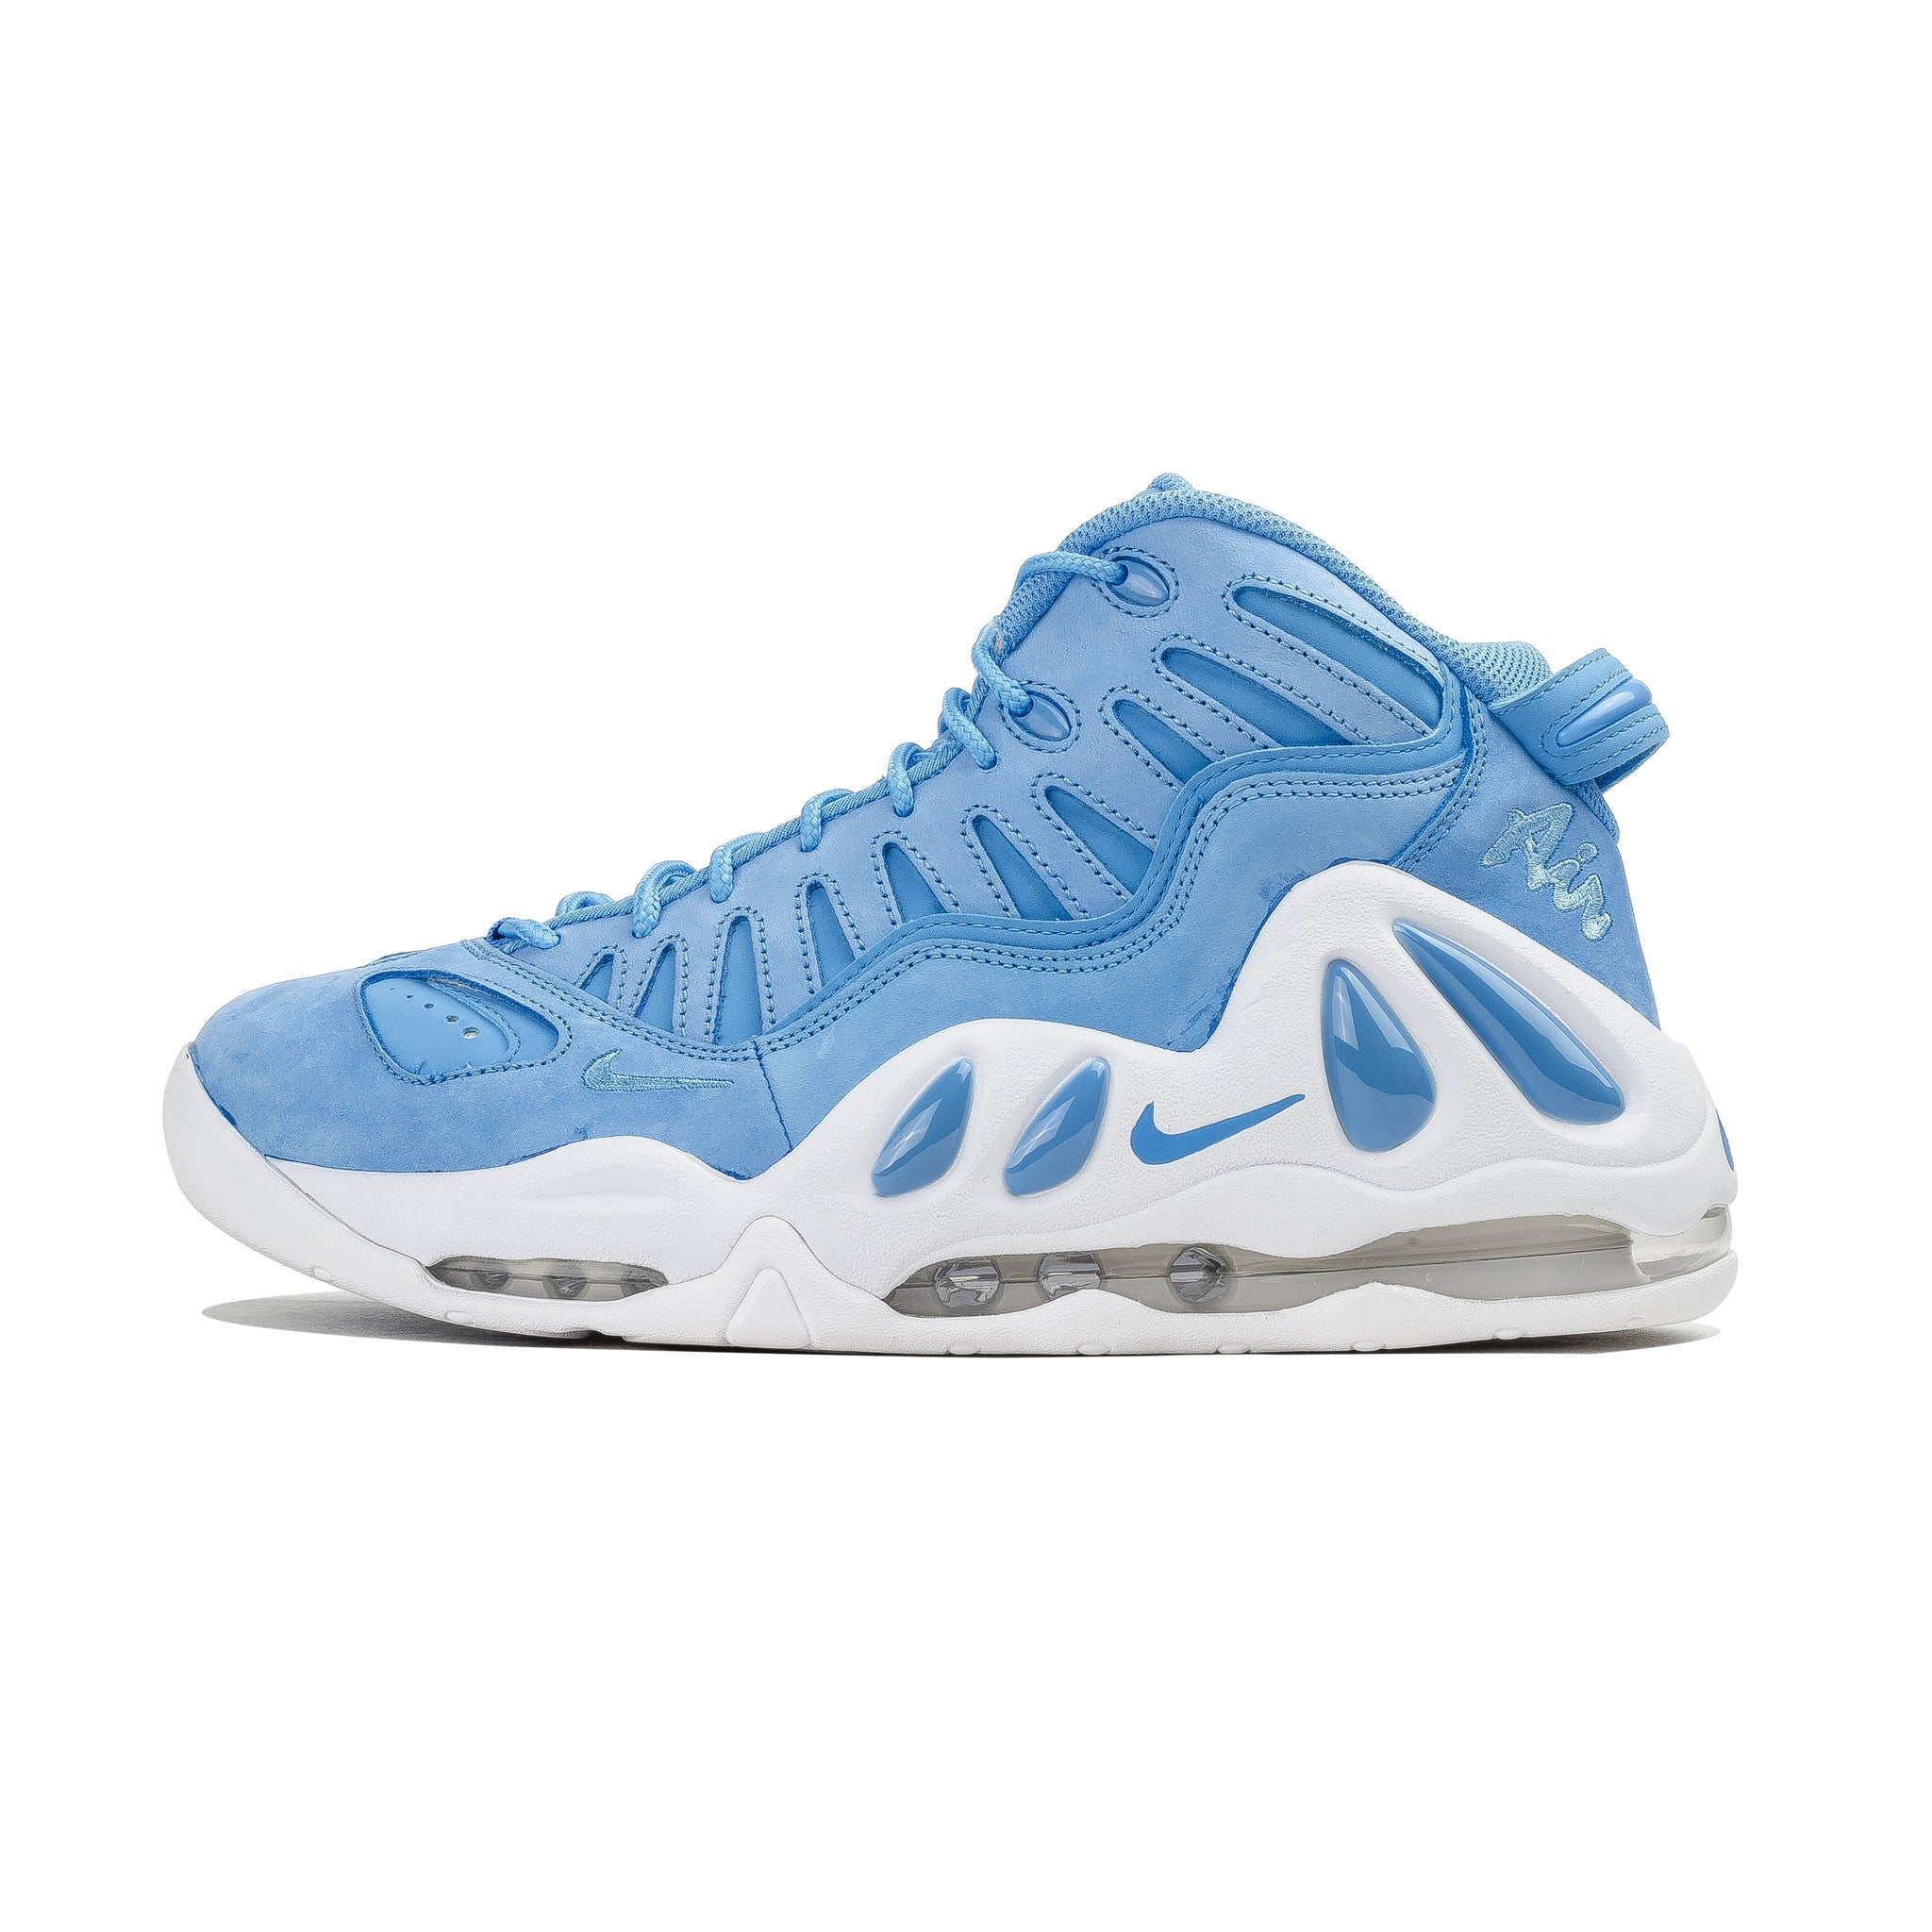 aaf2dd47e8 air max uptempo 97 all white